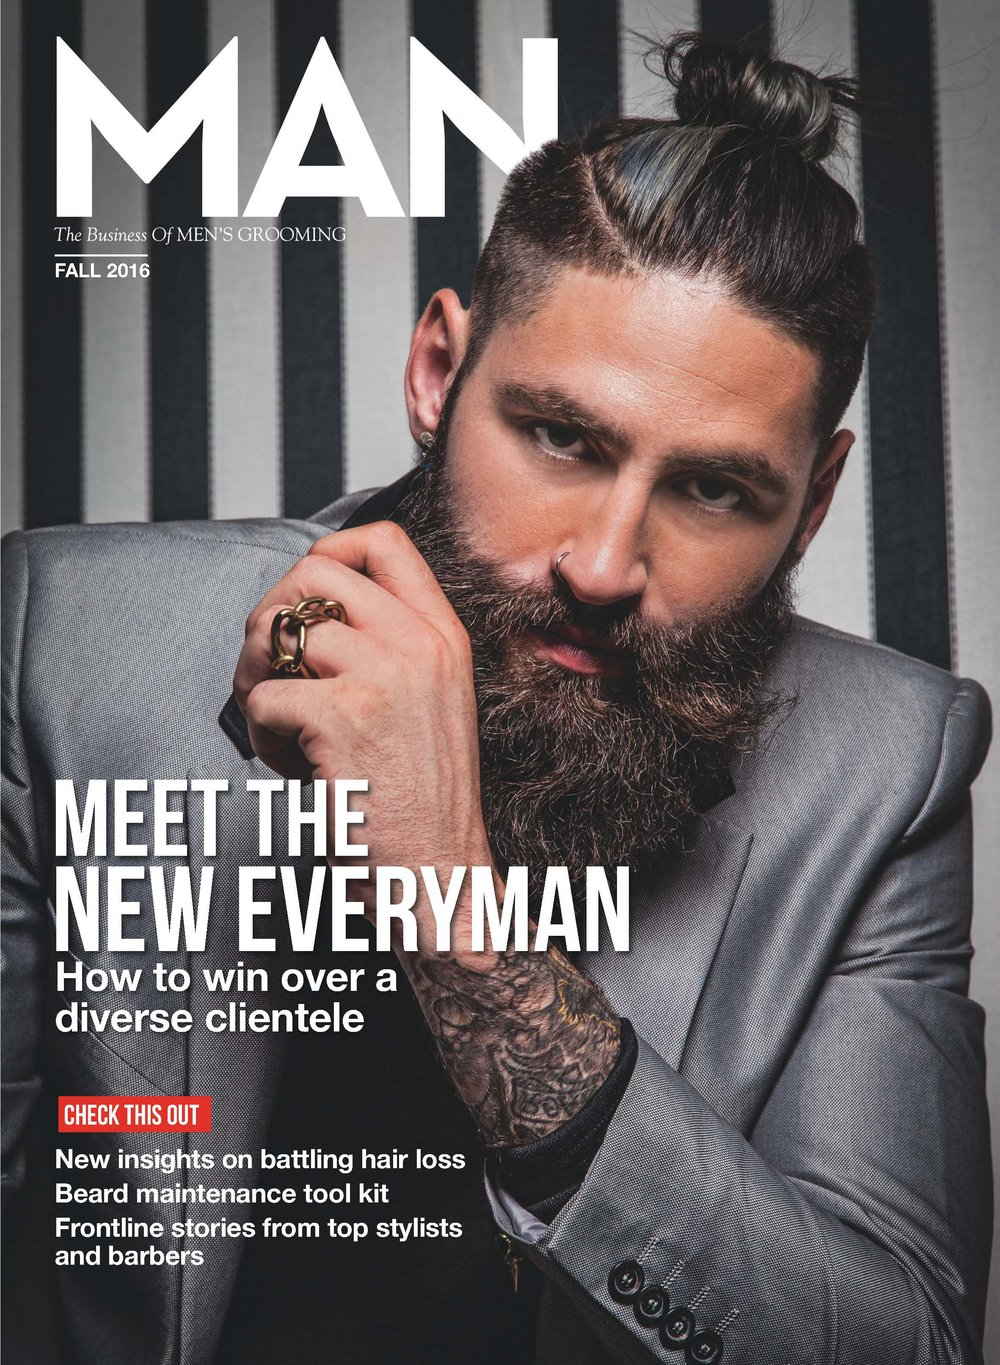 Man Magazine Cover.jpg